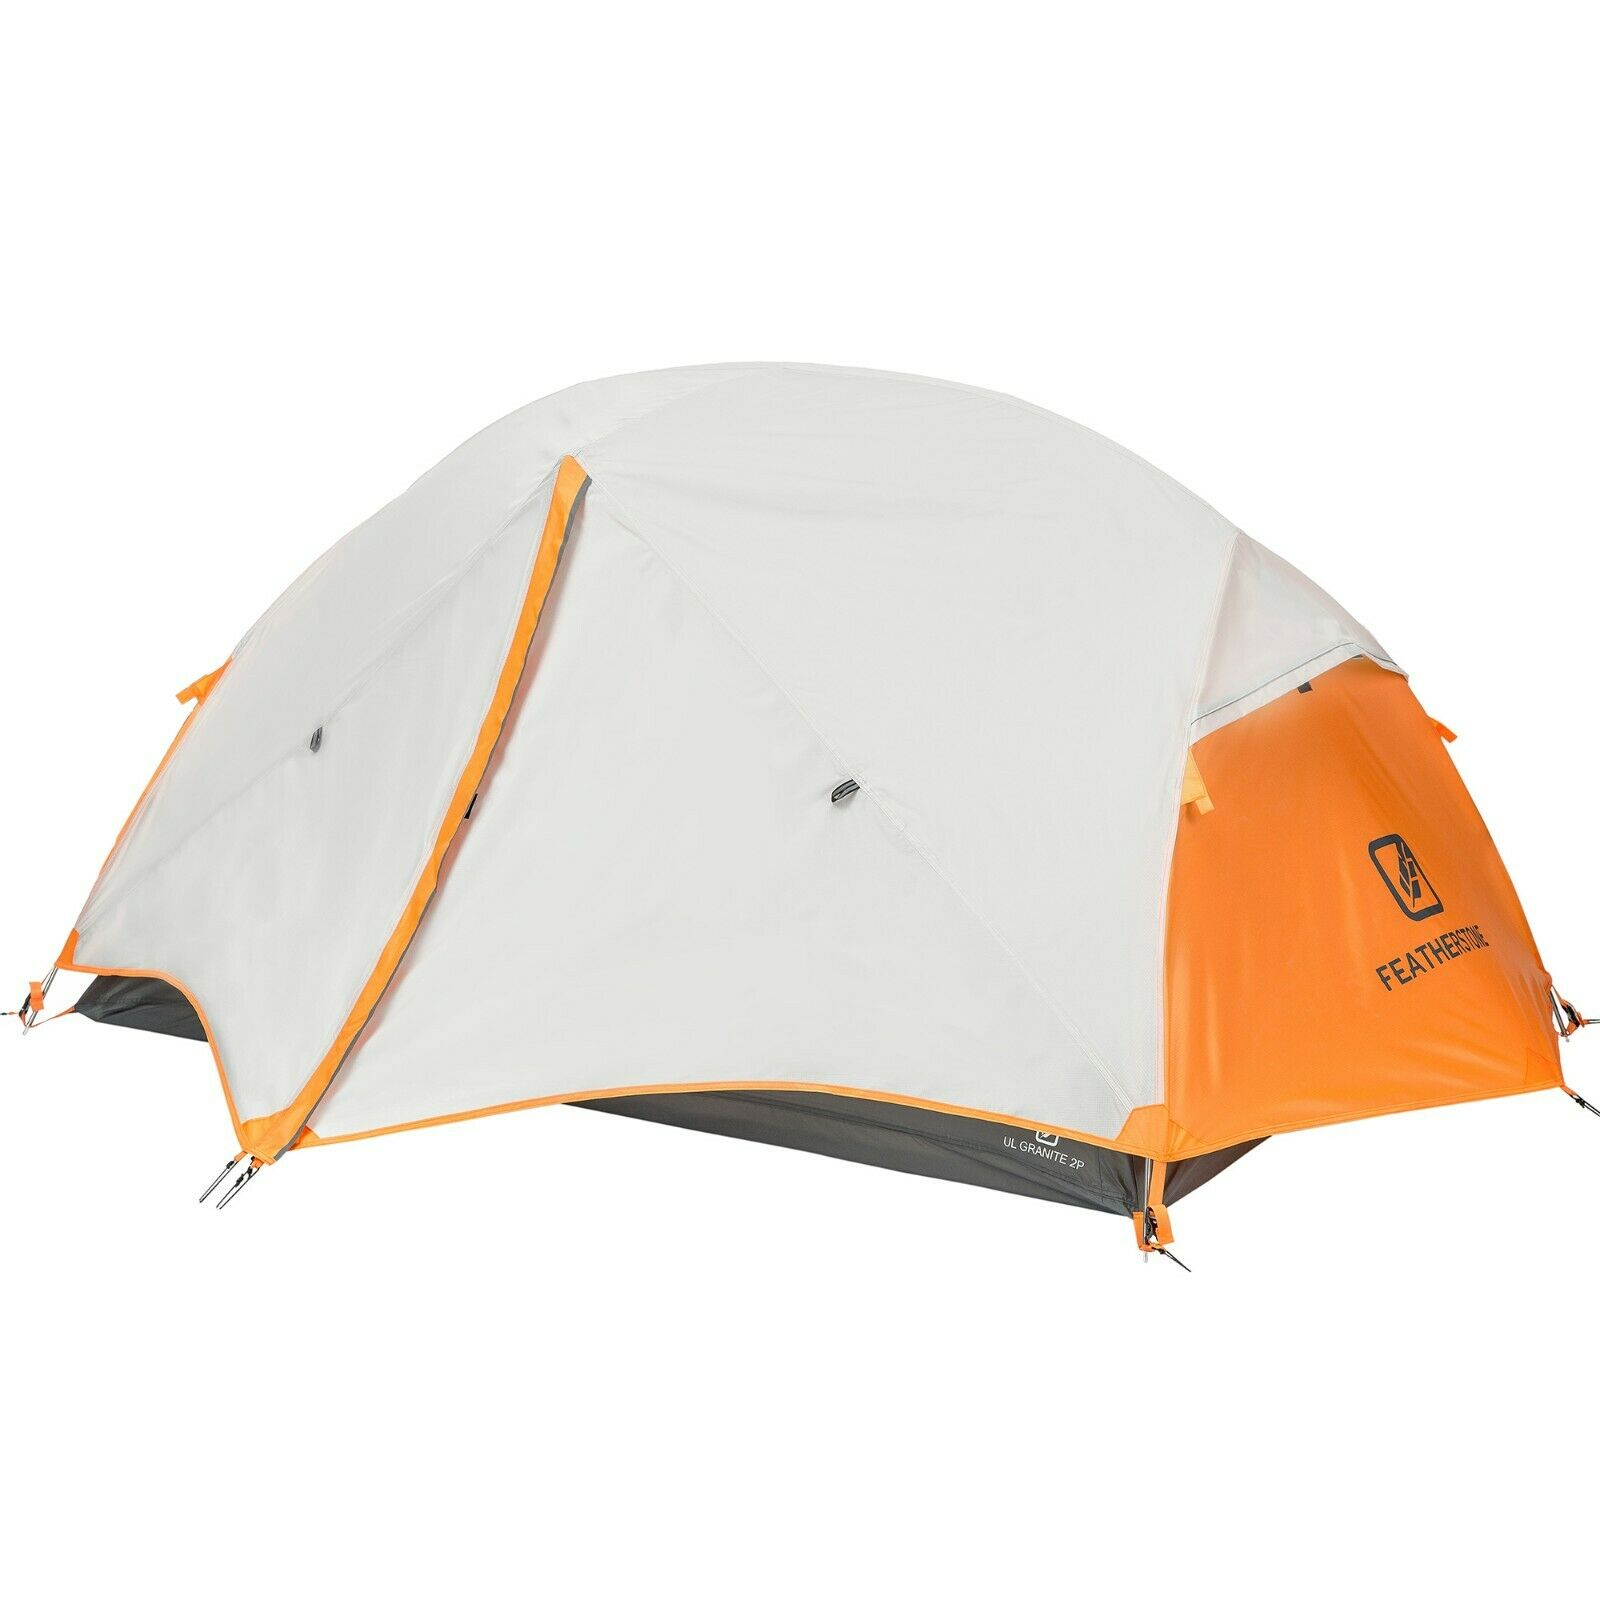 Featherstone Outdoor UL Granite 2 Person Backpacking Tent (Refurbished)